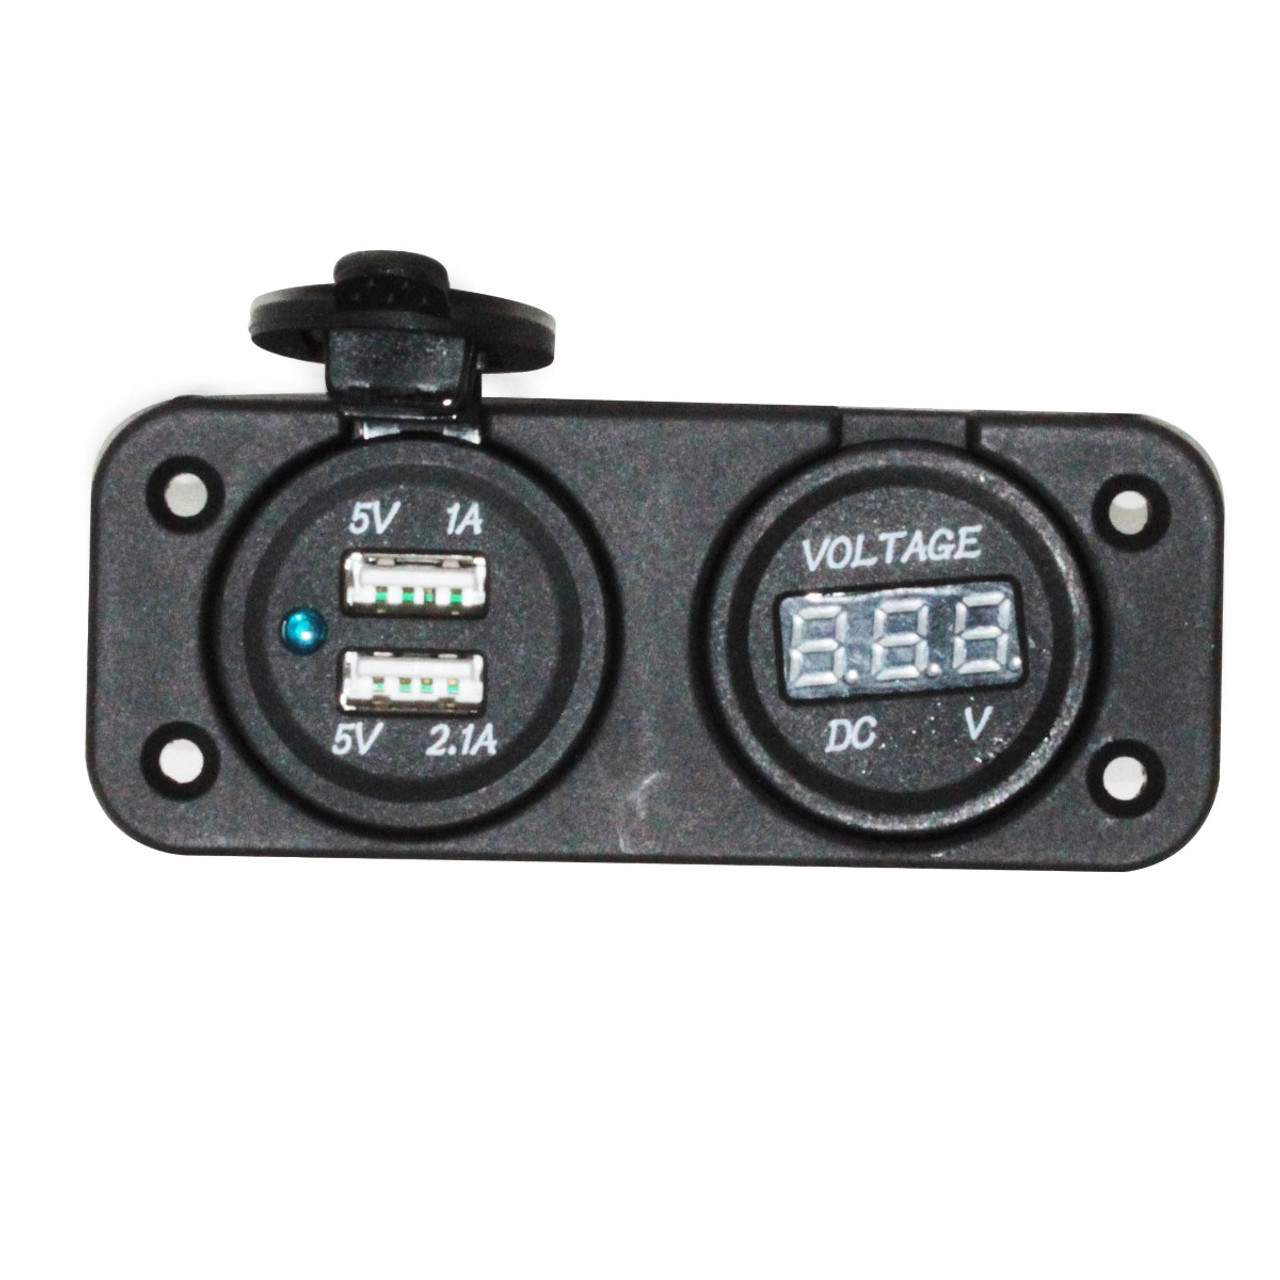 Marine Grade Dual USB Charger Outlet and Digital Display Voltmeter DC 12V